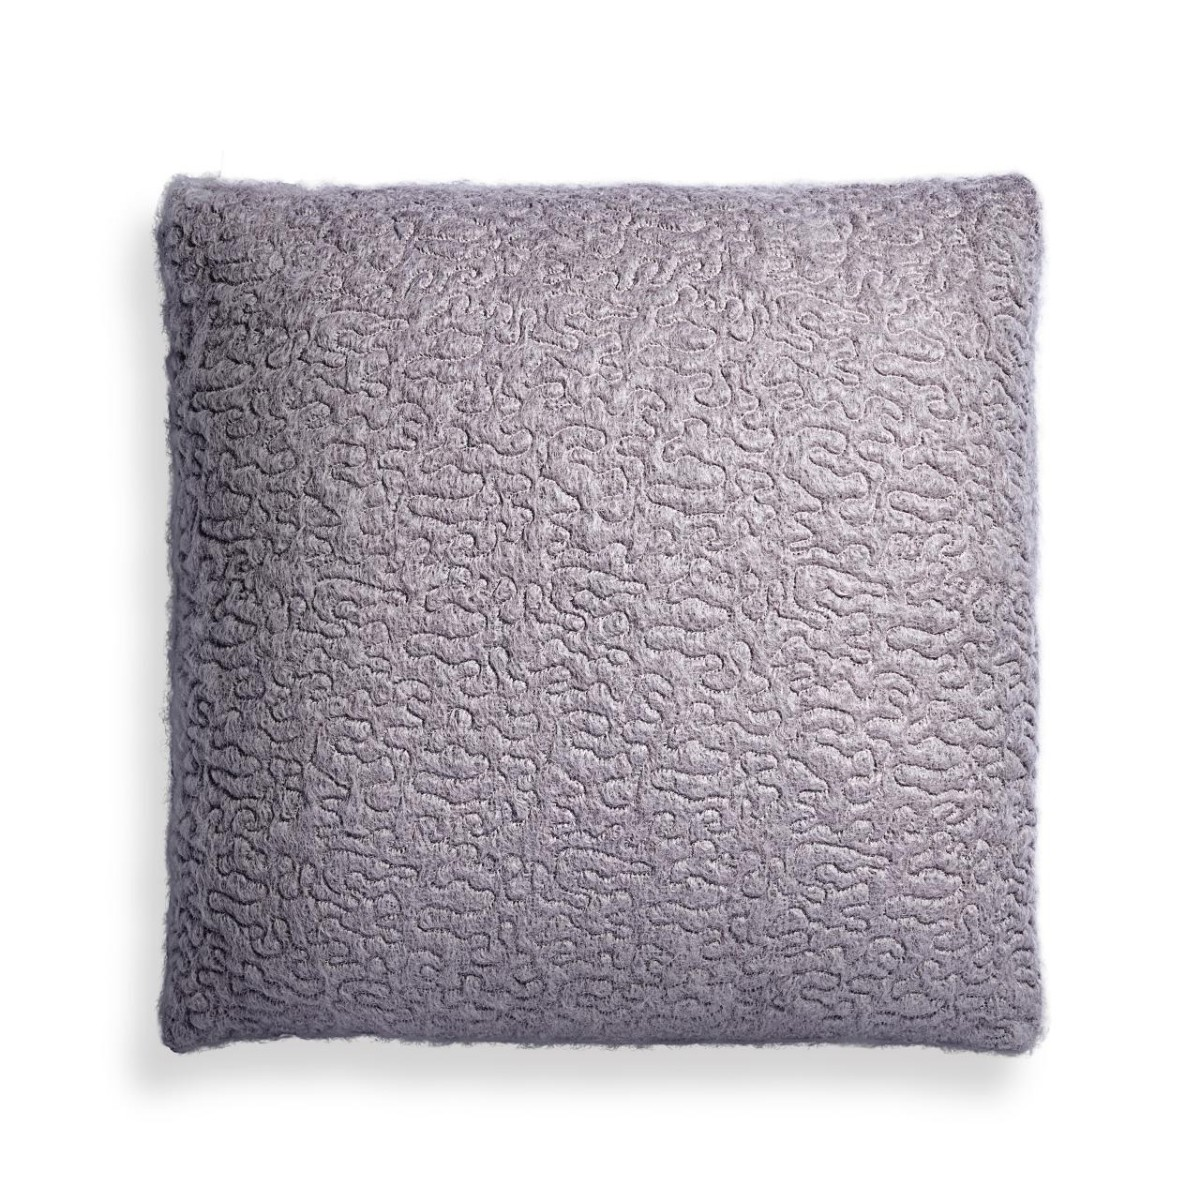 L'Objet I Haas Vermiculation Pillow I Silver